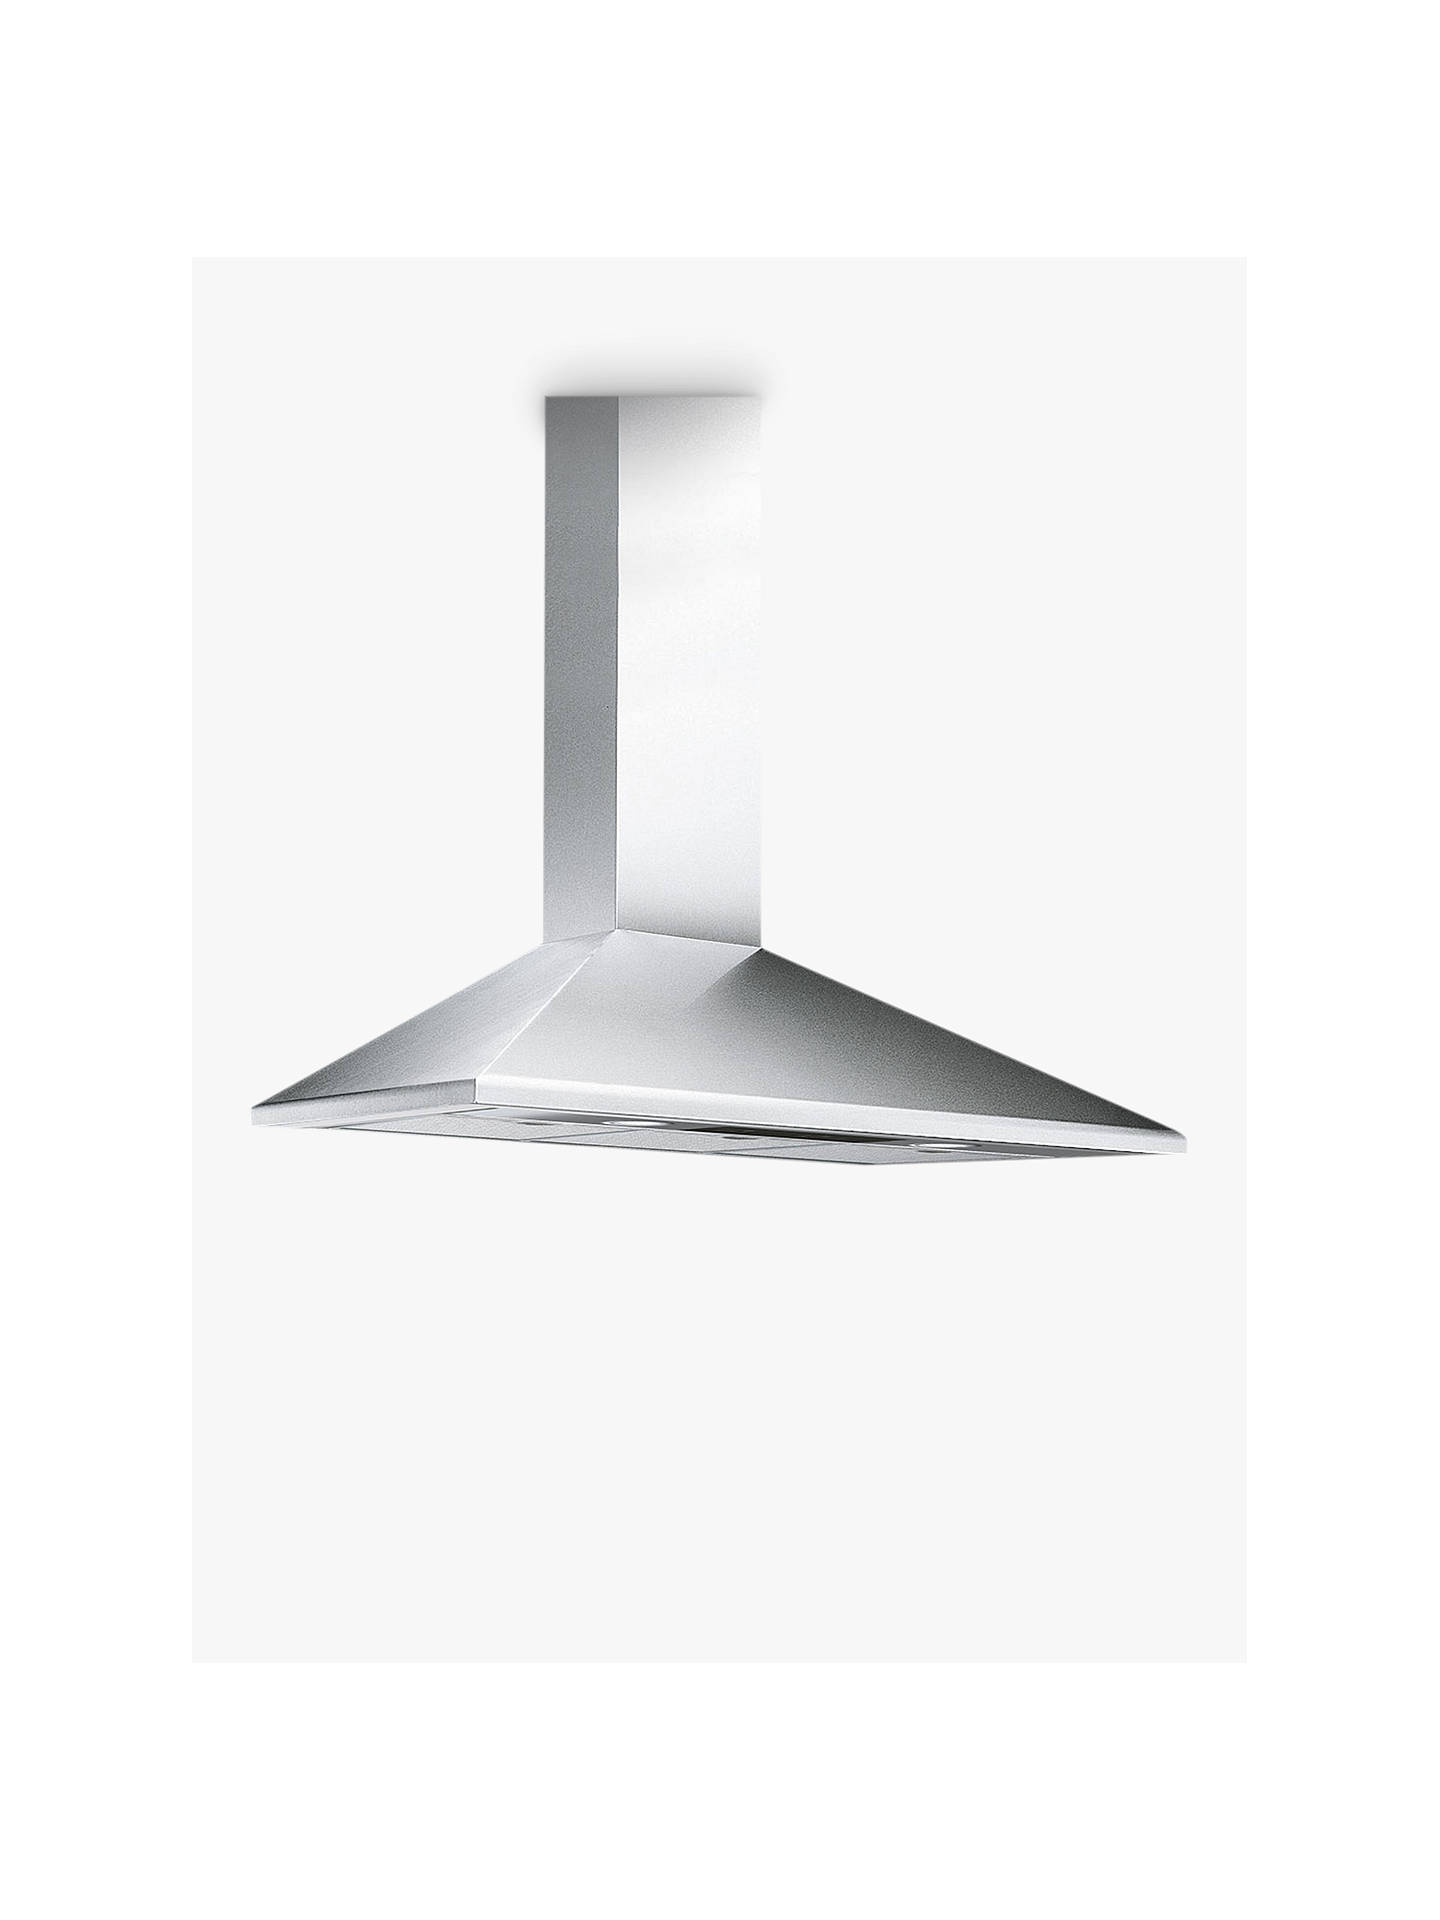 BuySmeg KSED95XE 90cm Chimney Cooker Hood, Stainless Steel Online at johnlewis.com